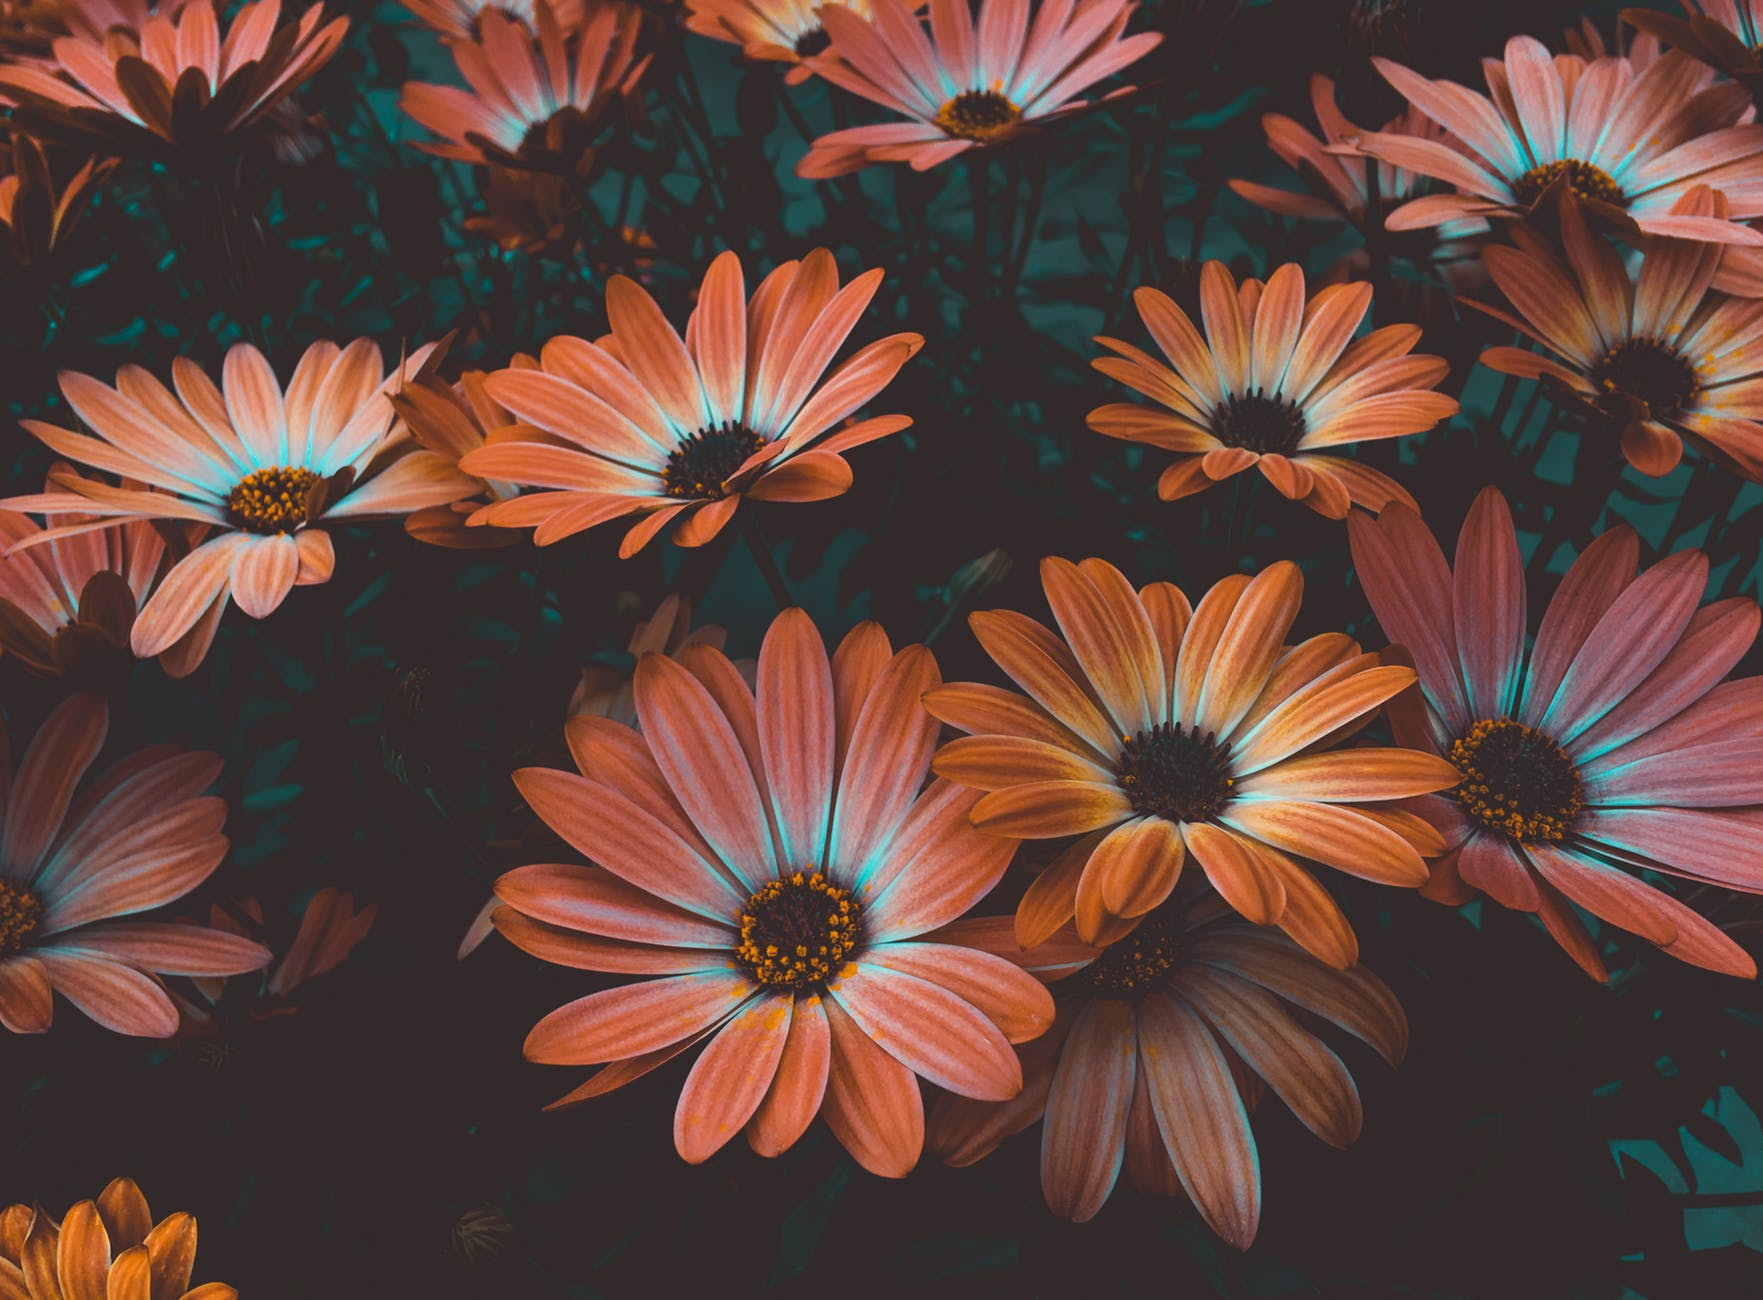 photo of daisy flowers